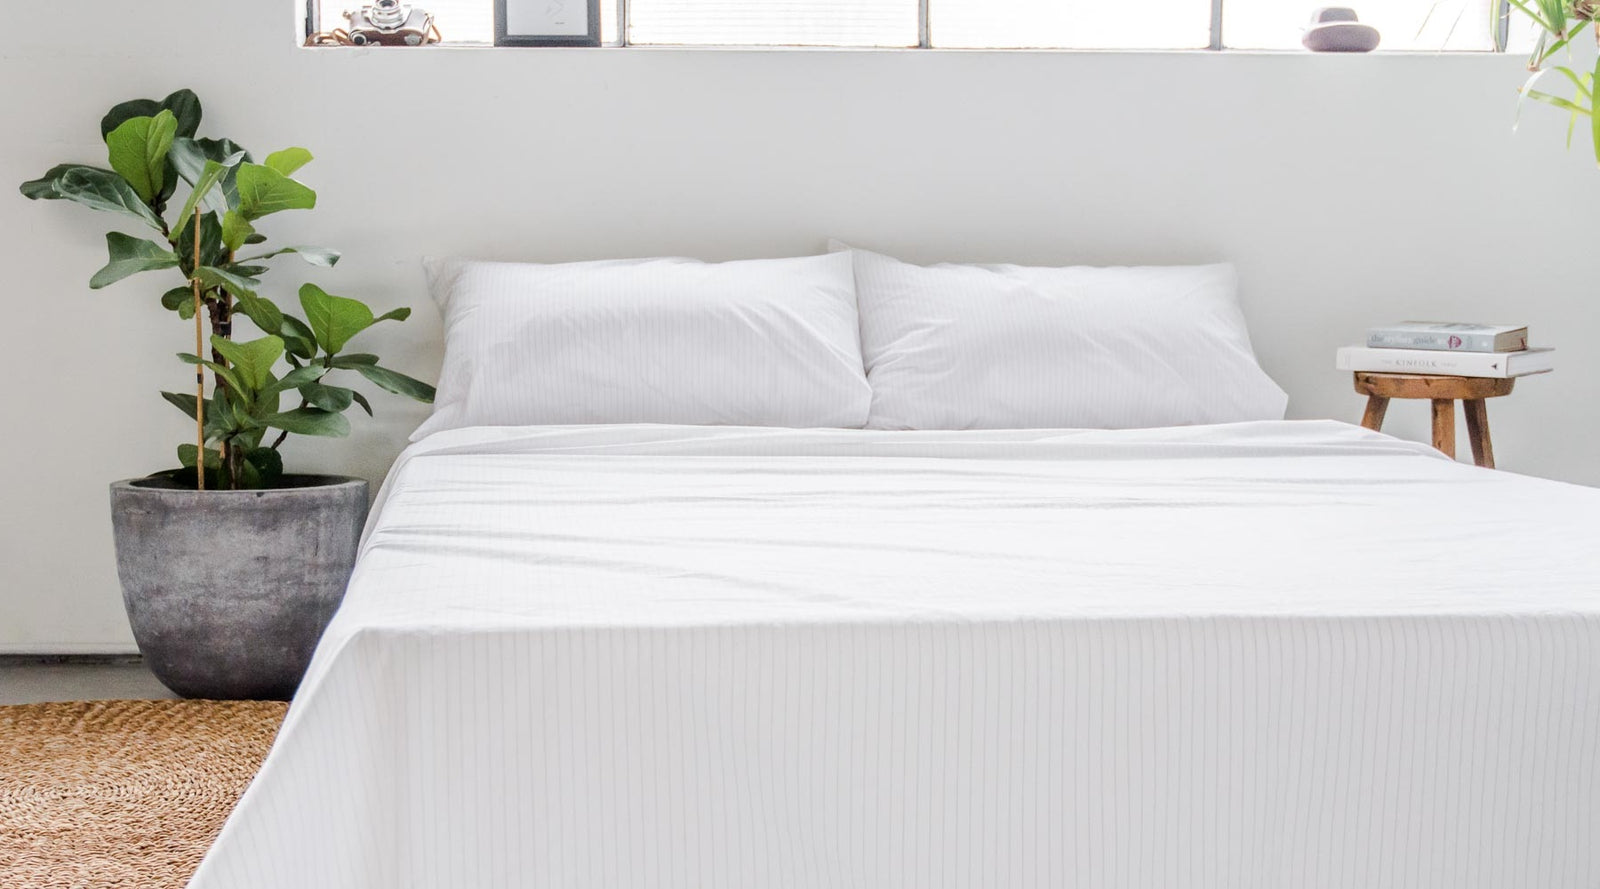 How To Reduce Wrinkles In Bed Sheets Without Ironing The Good Sheet